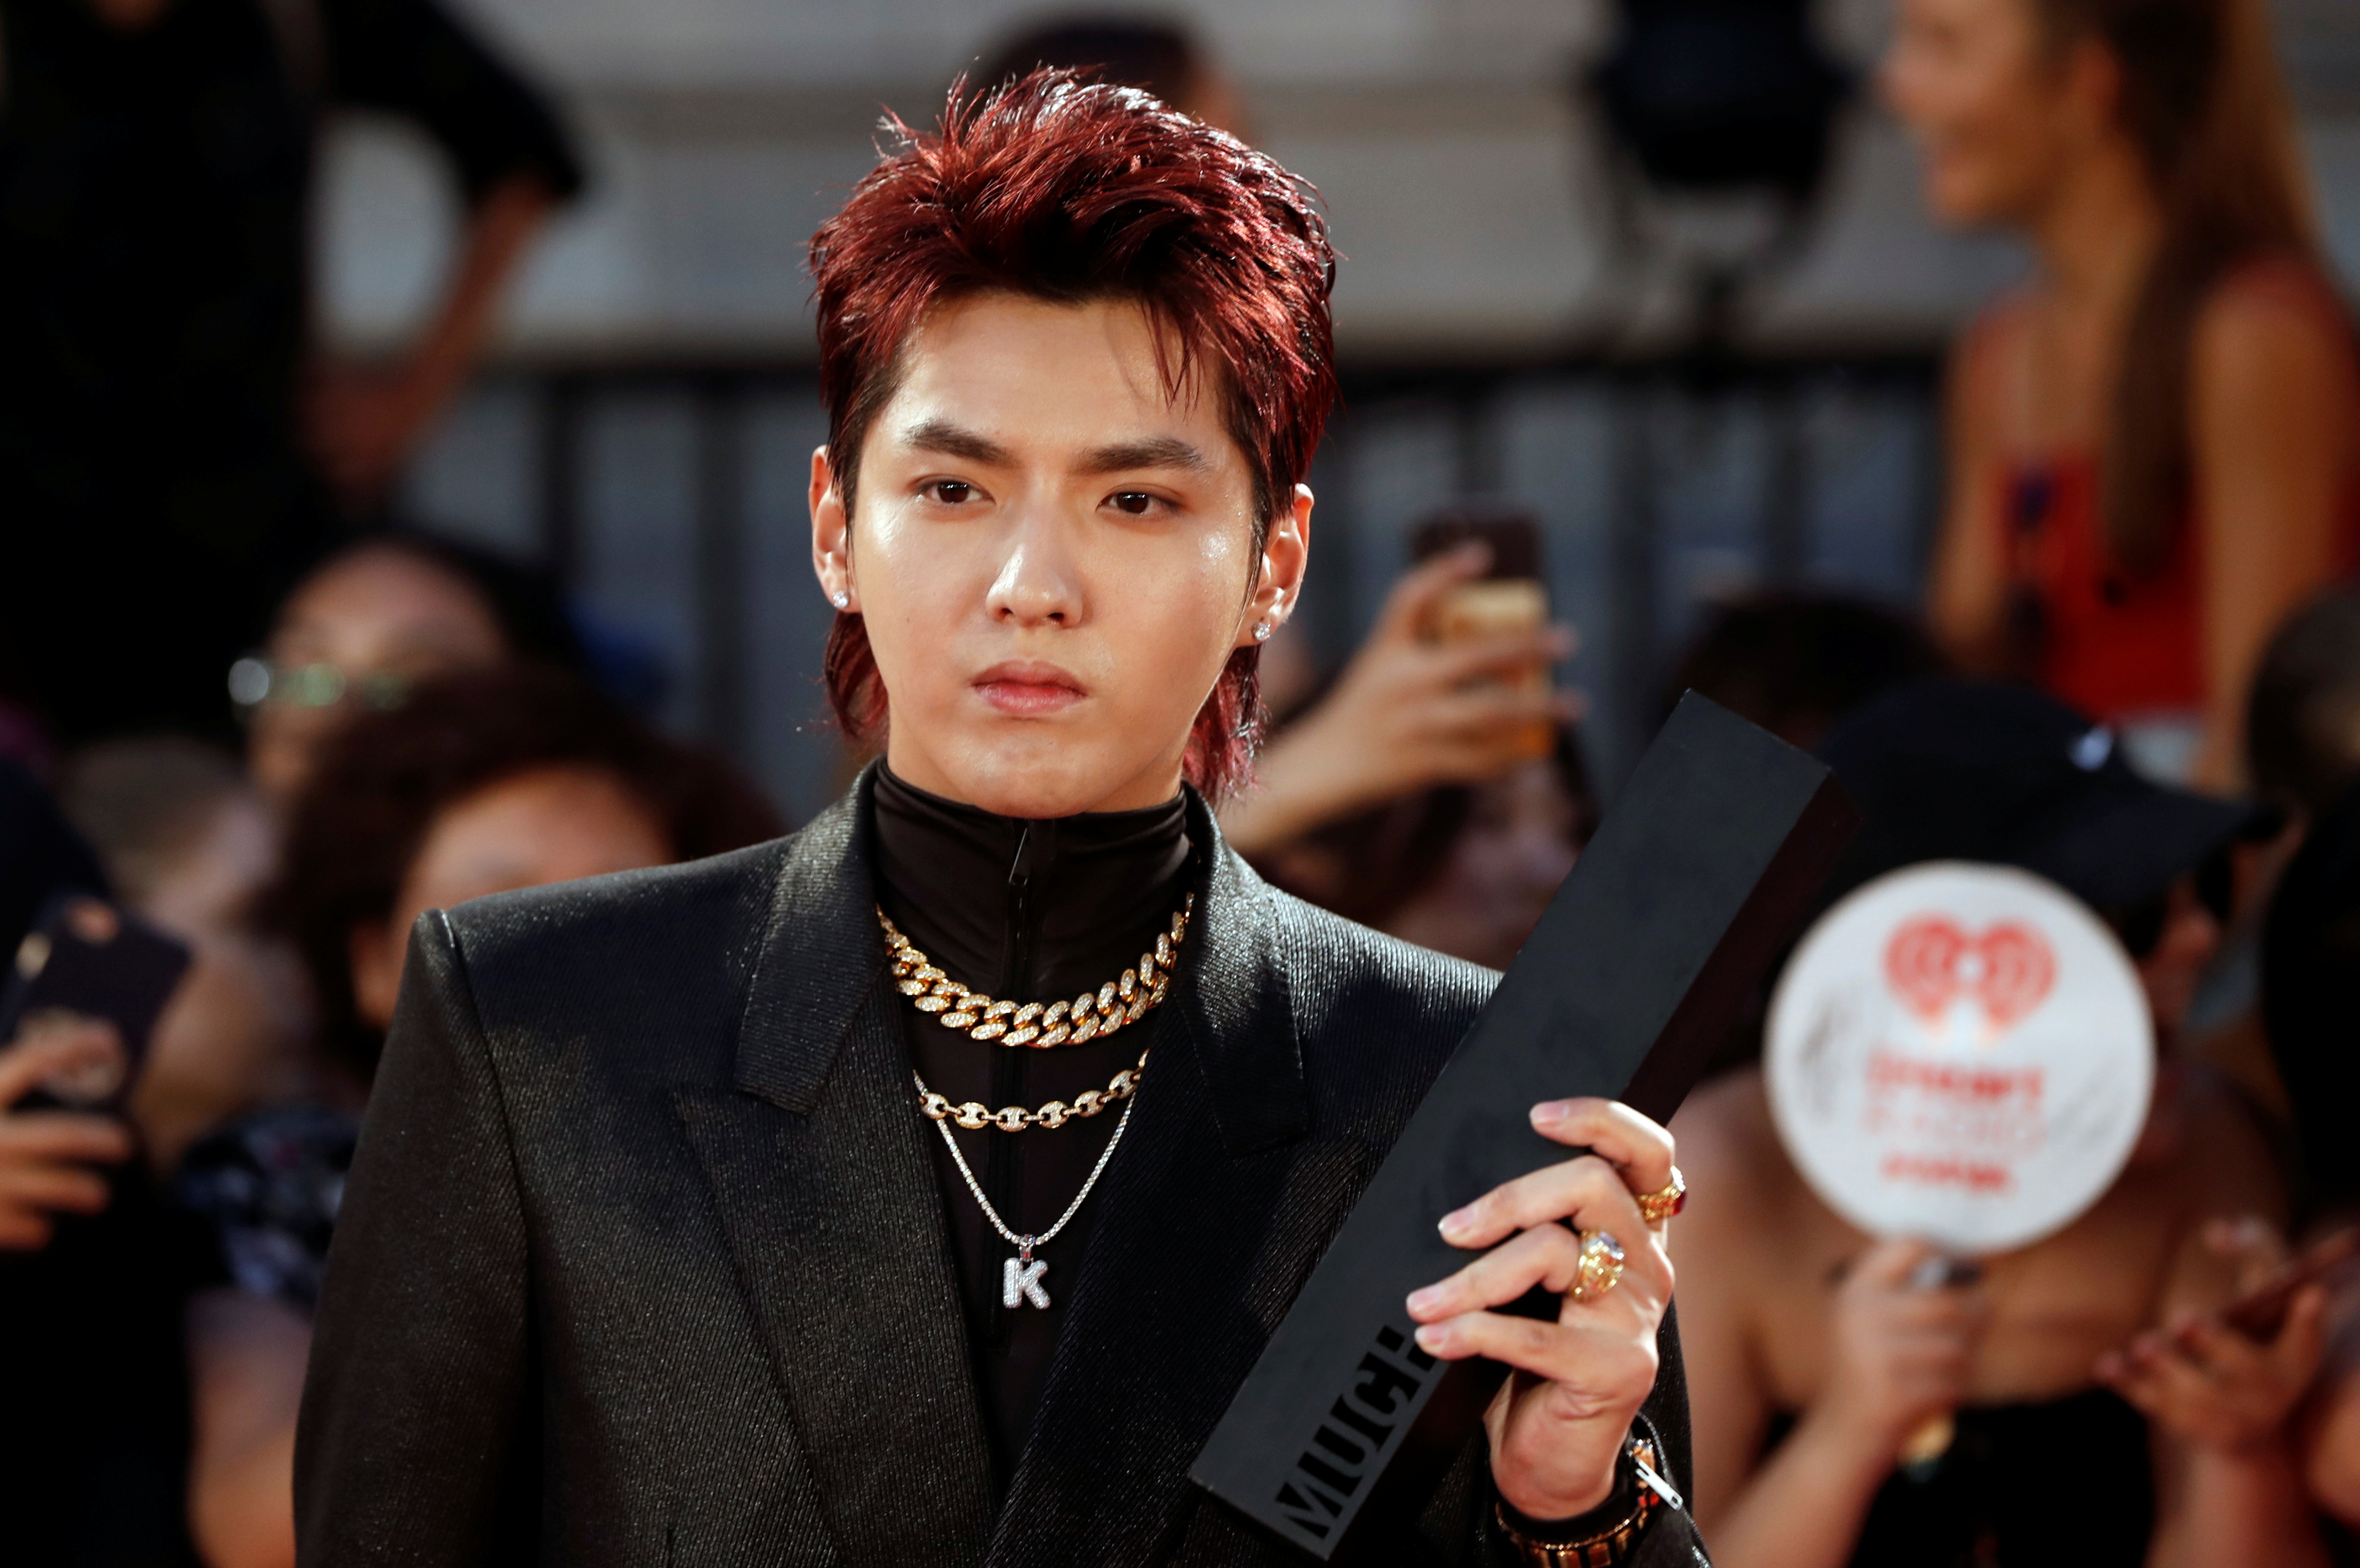 Kris Wu arrives at the iHeartRadio MuchMusic Video Awards (MMVA) in Toronto, Ontario, Canada August 26, 2018. REUTERS/Mark Blinch/File Photo